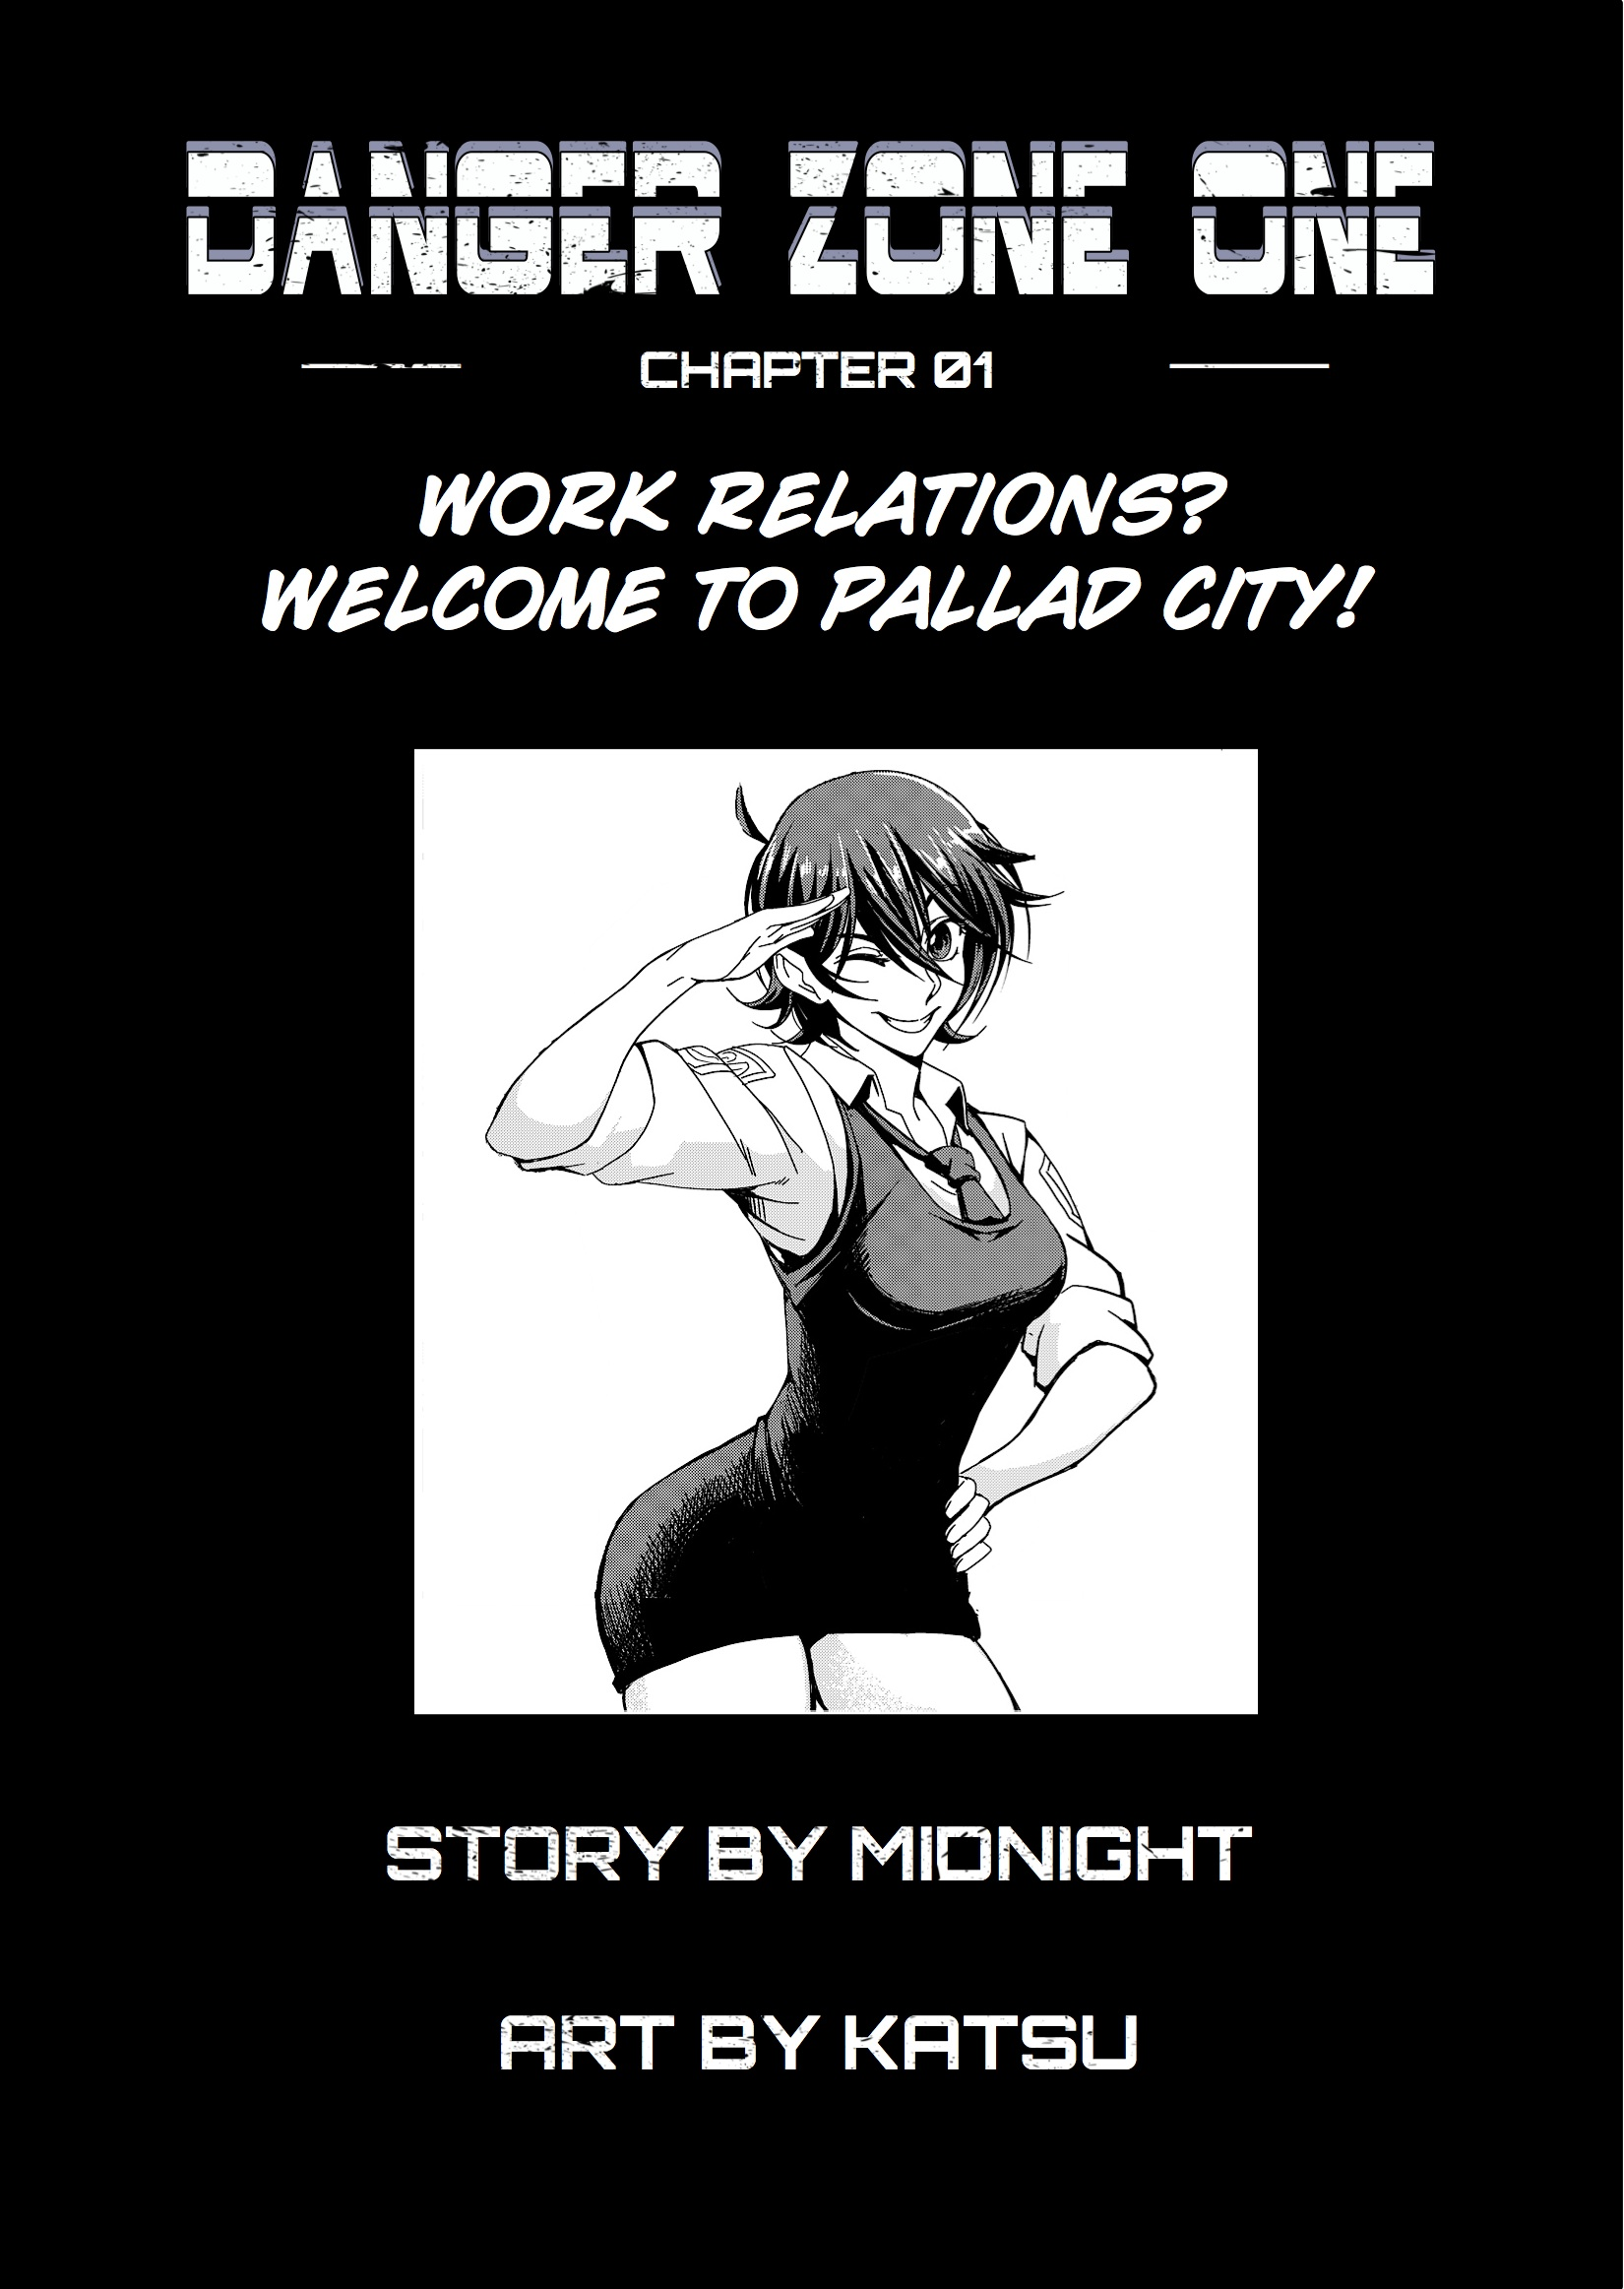 Chapter 1: Welcome to Pallad City